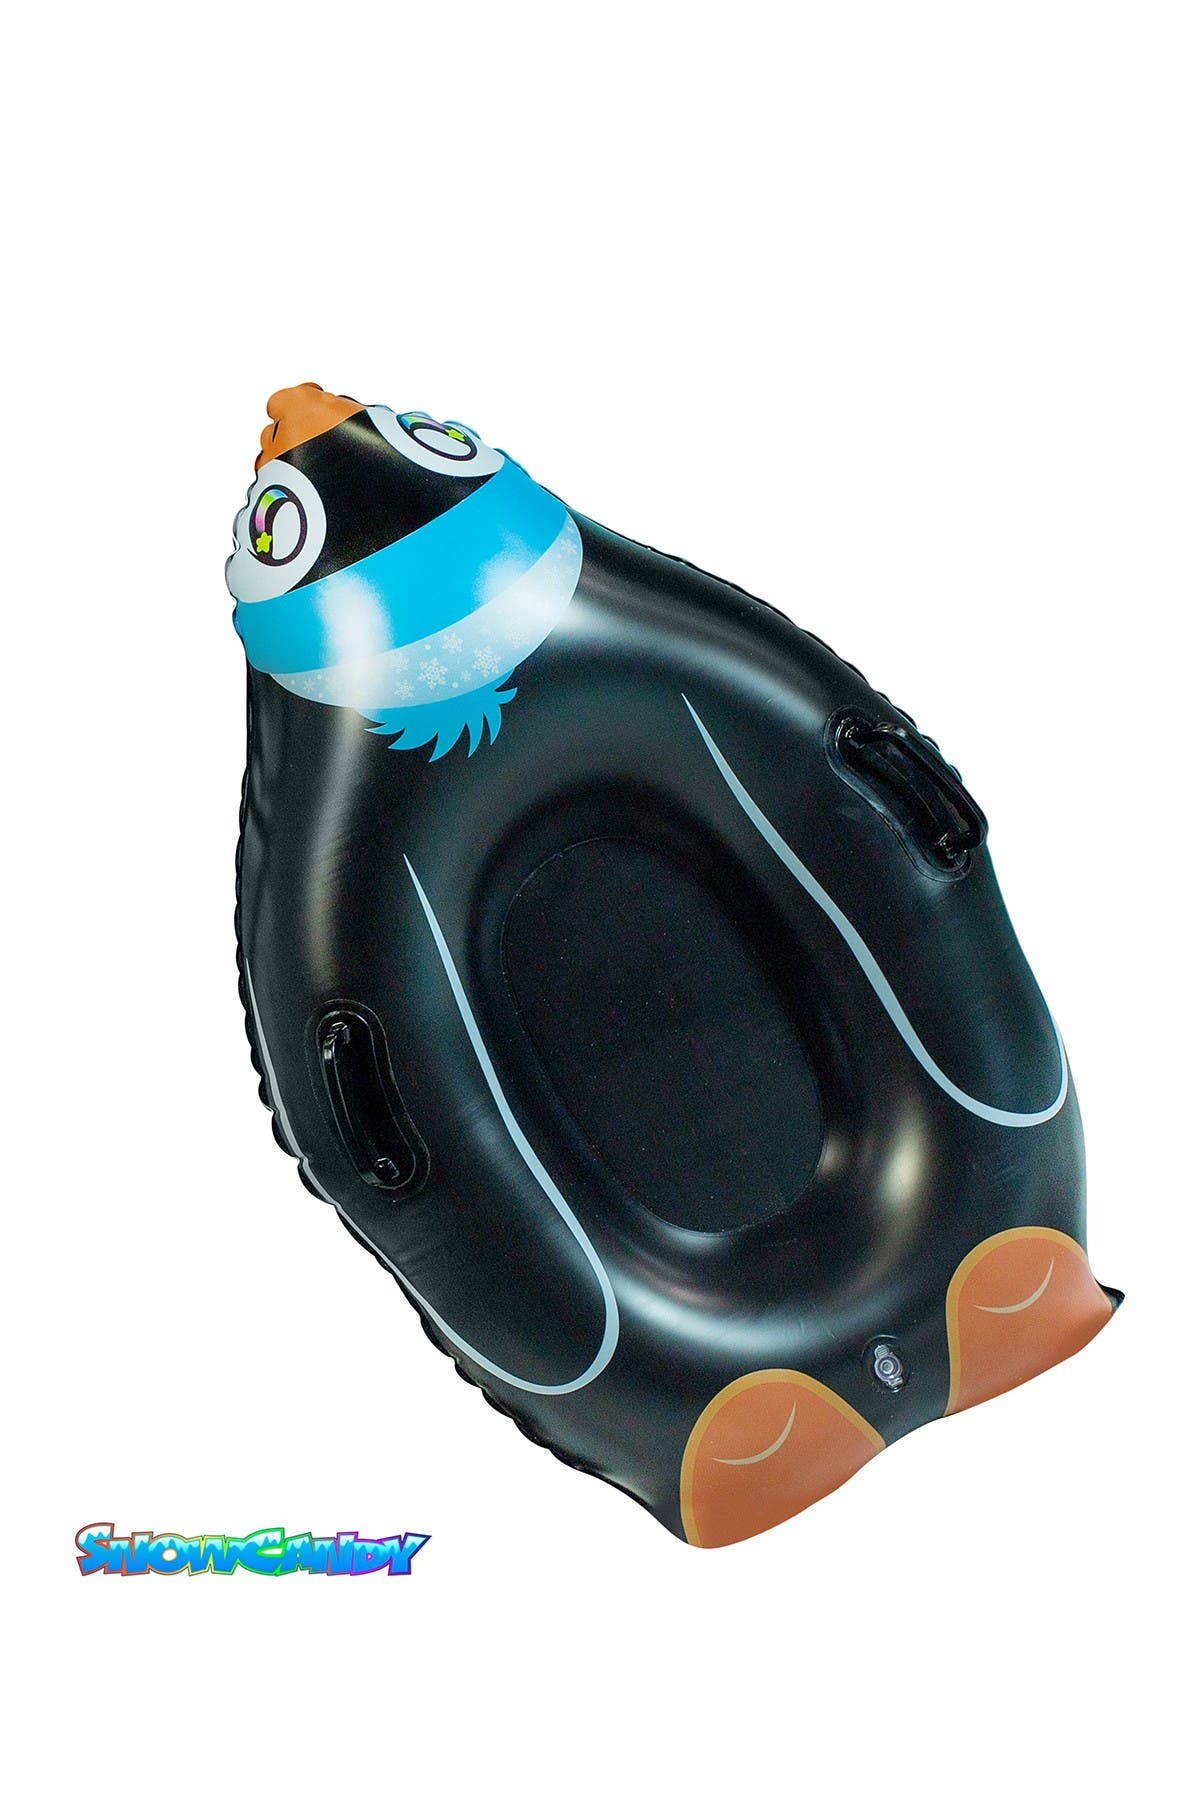 Image of POOLCANDY SnowCandy Penguin Snow Sled